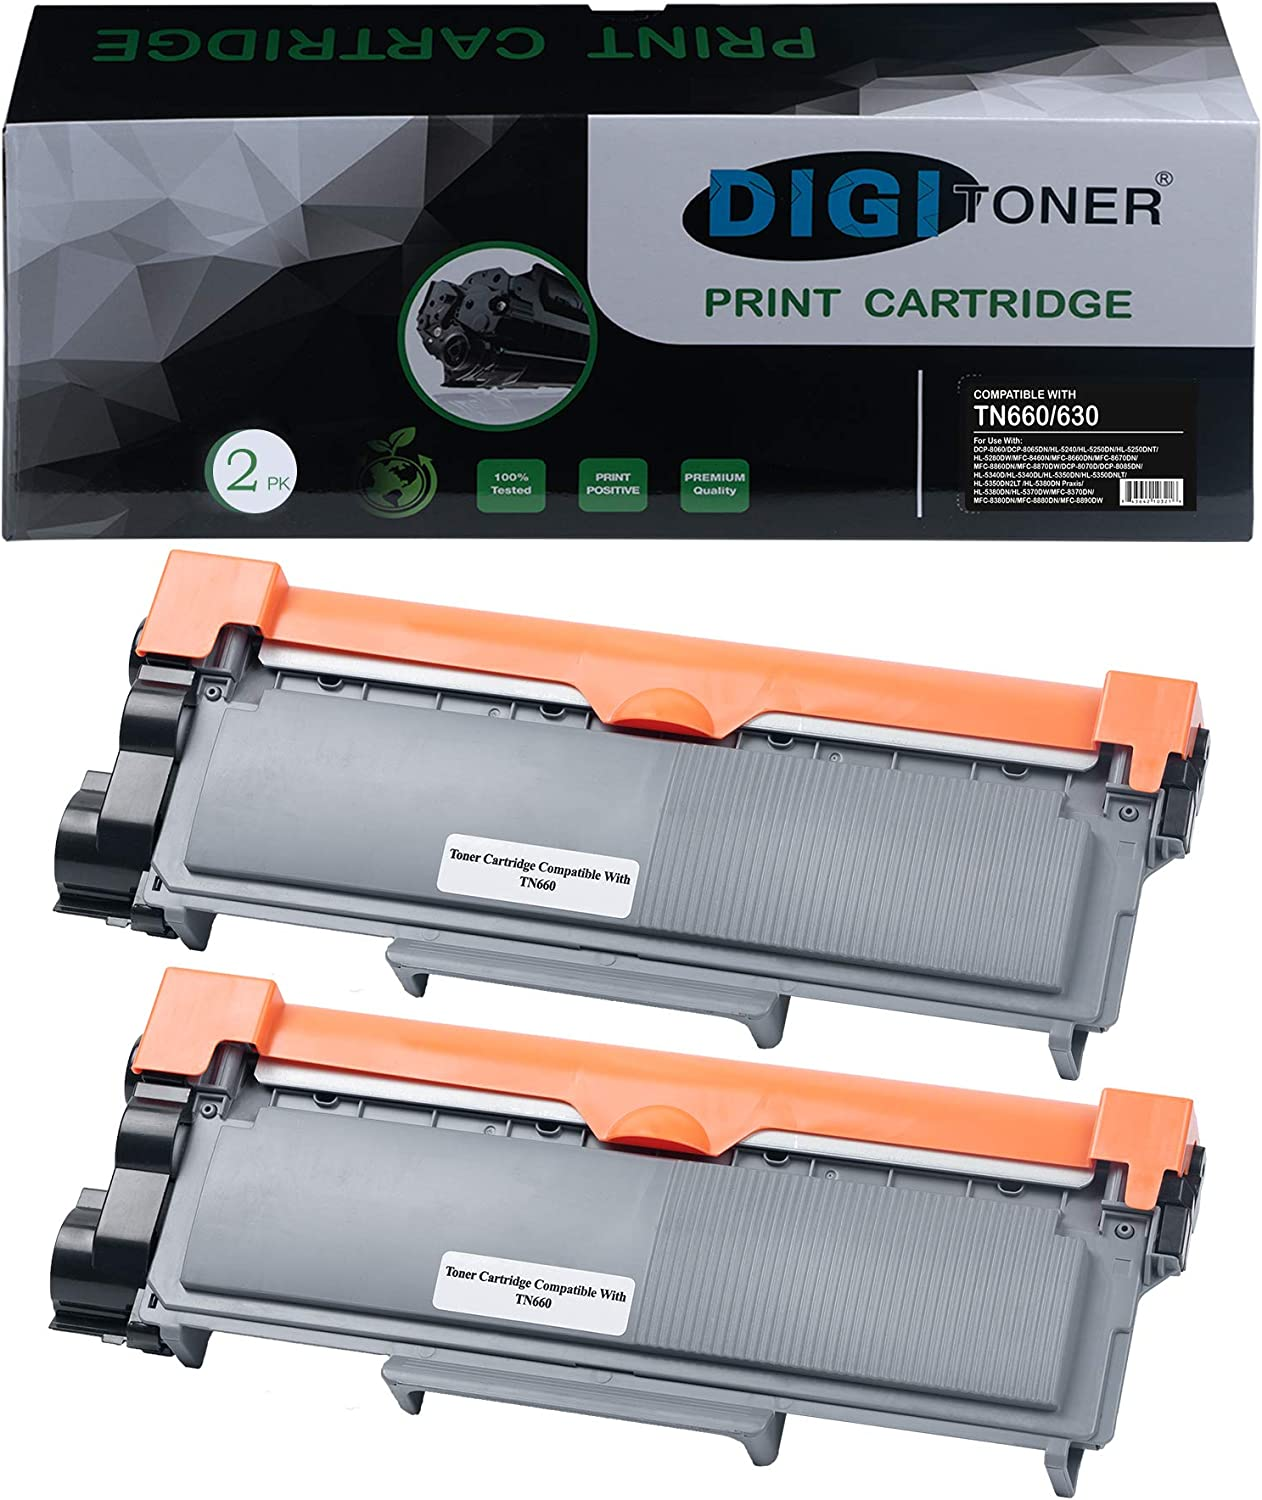 No-name Compatible 1 Pack High Yield Black Full Toner Cartridge with Drum Unit Replacement for Brother TN-630 TN-2320 TN-2350 TN2360 MFCL2700D MFCL2703DW MFCL2720DW MFCL2740DW HL-L2360DN HL-L2360DW